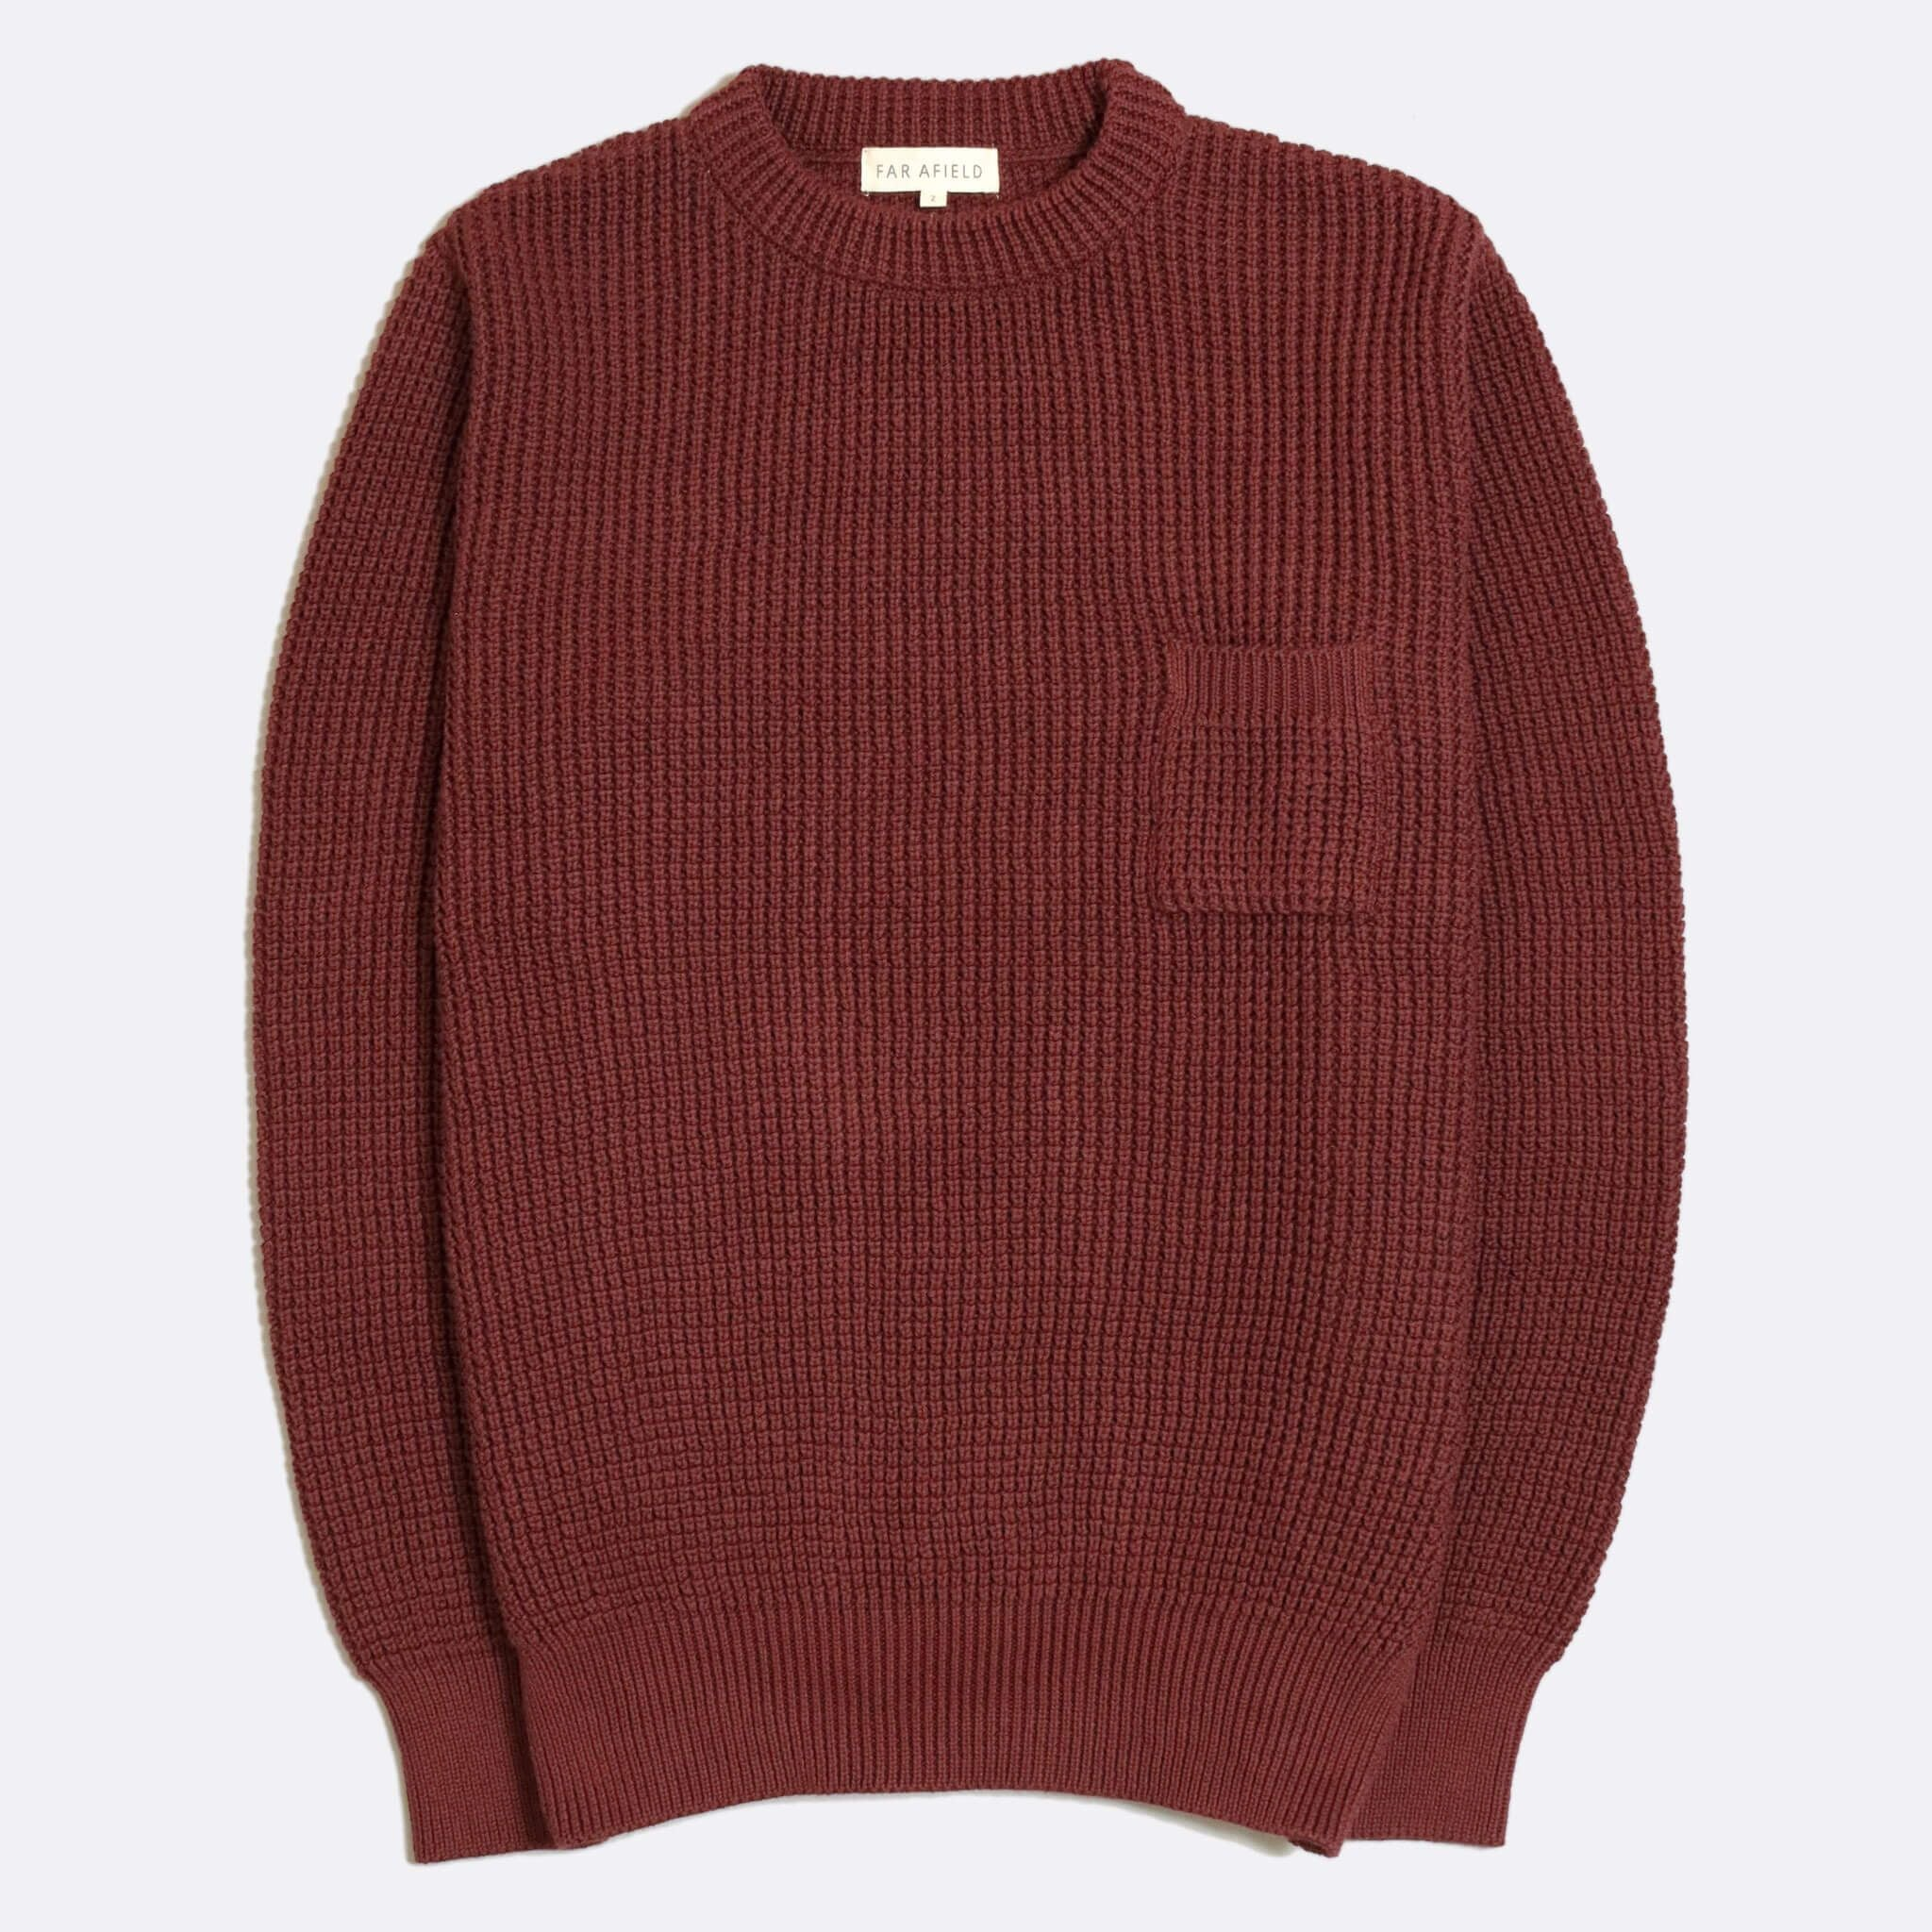 JOE POCKET CREWNECK